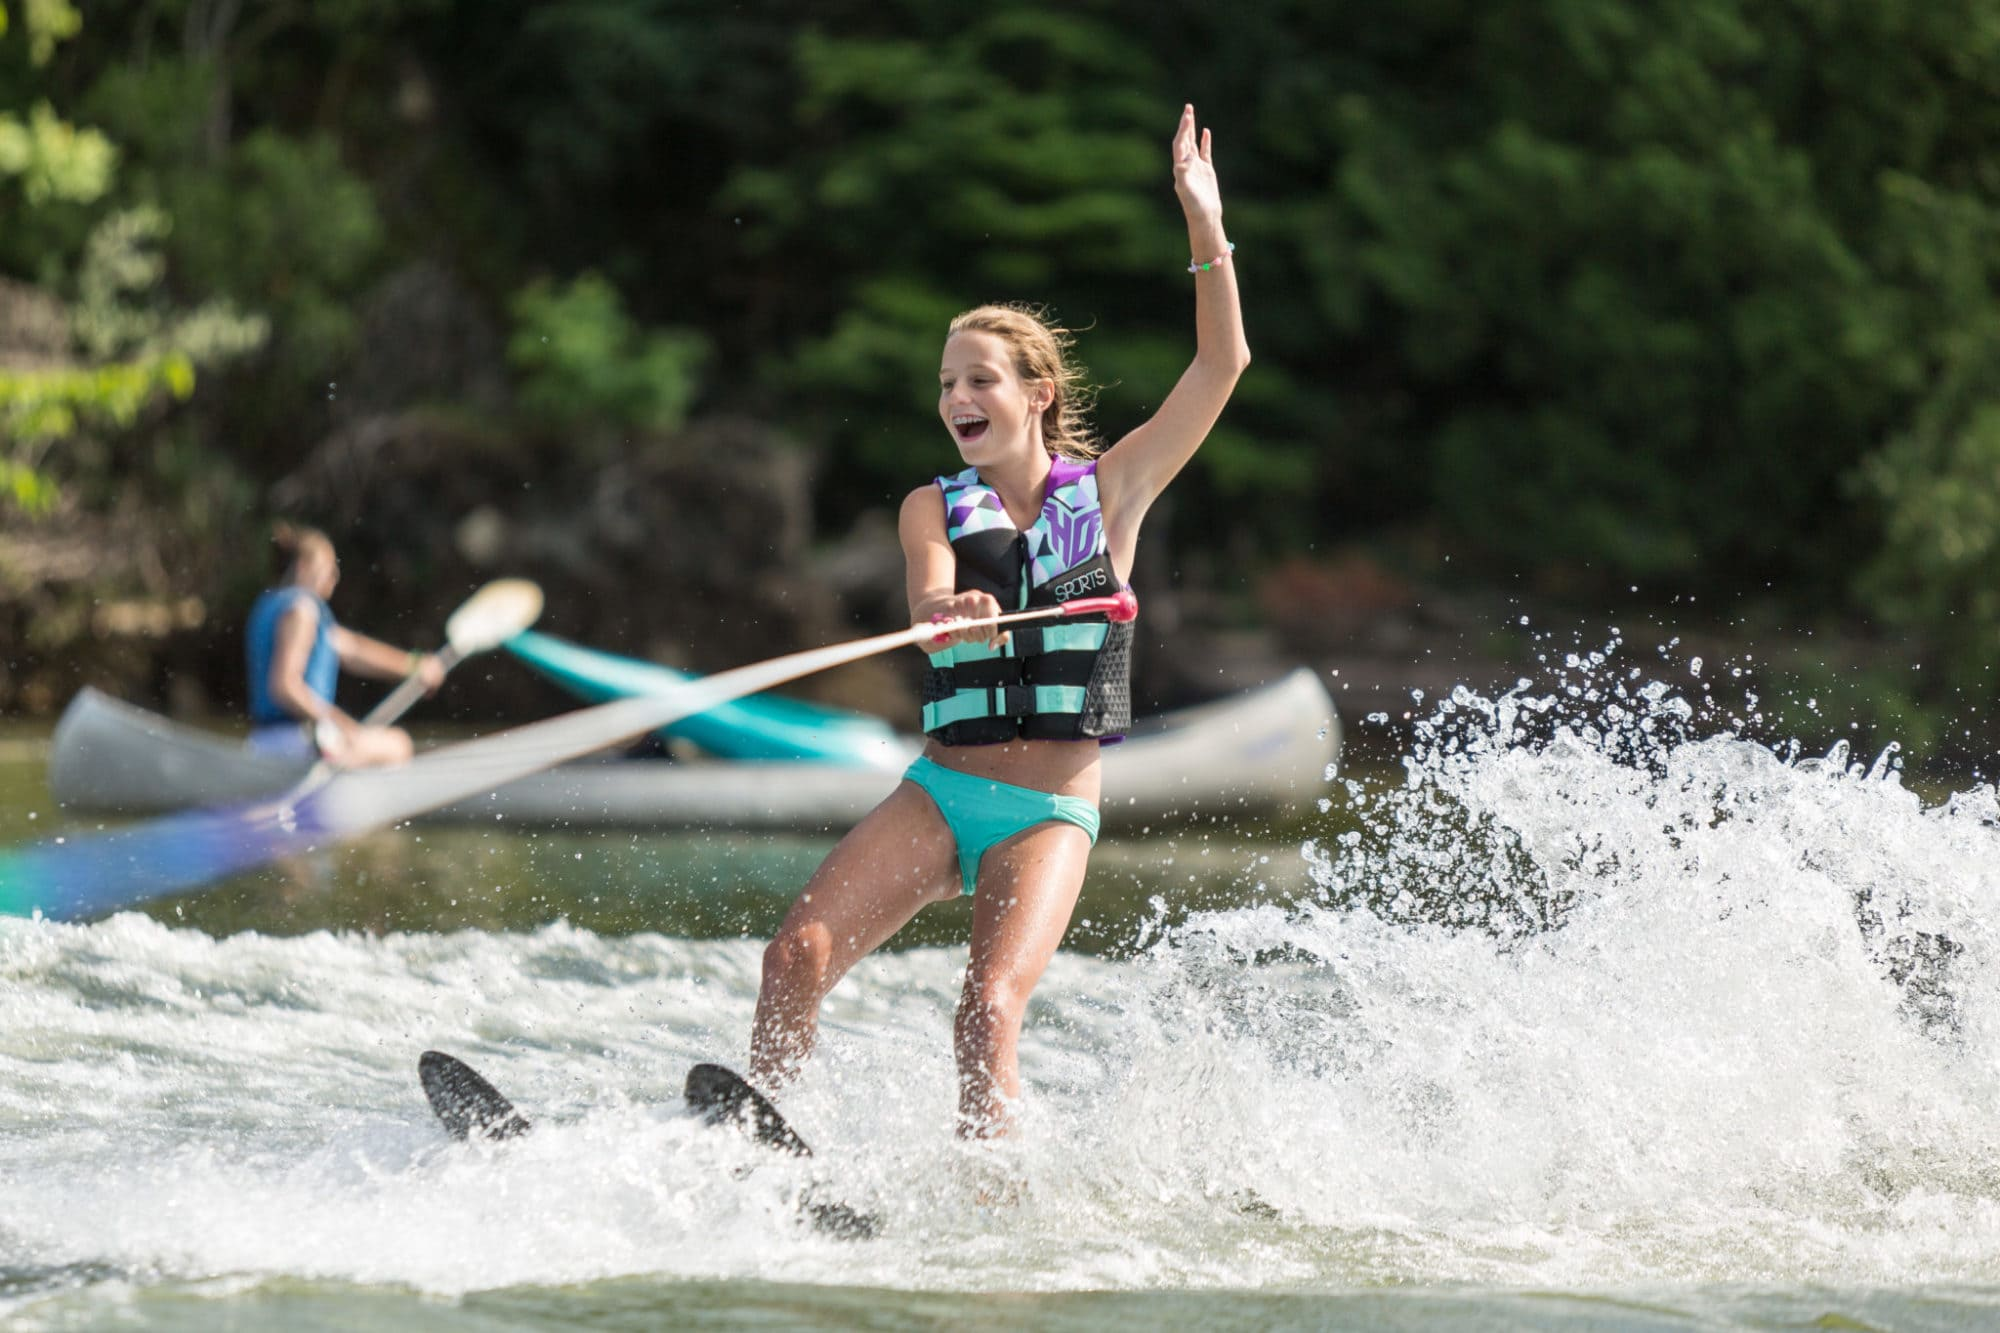 Girl waterskiing with one hand